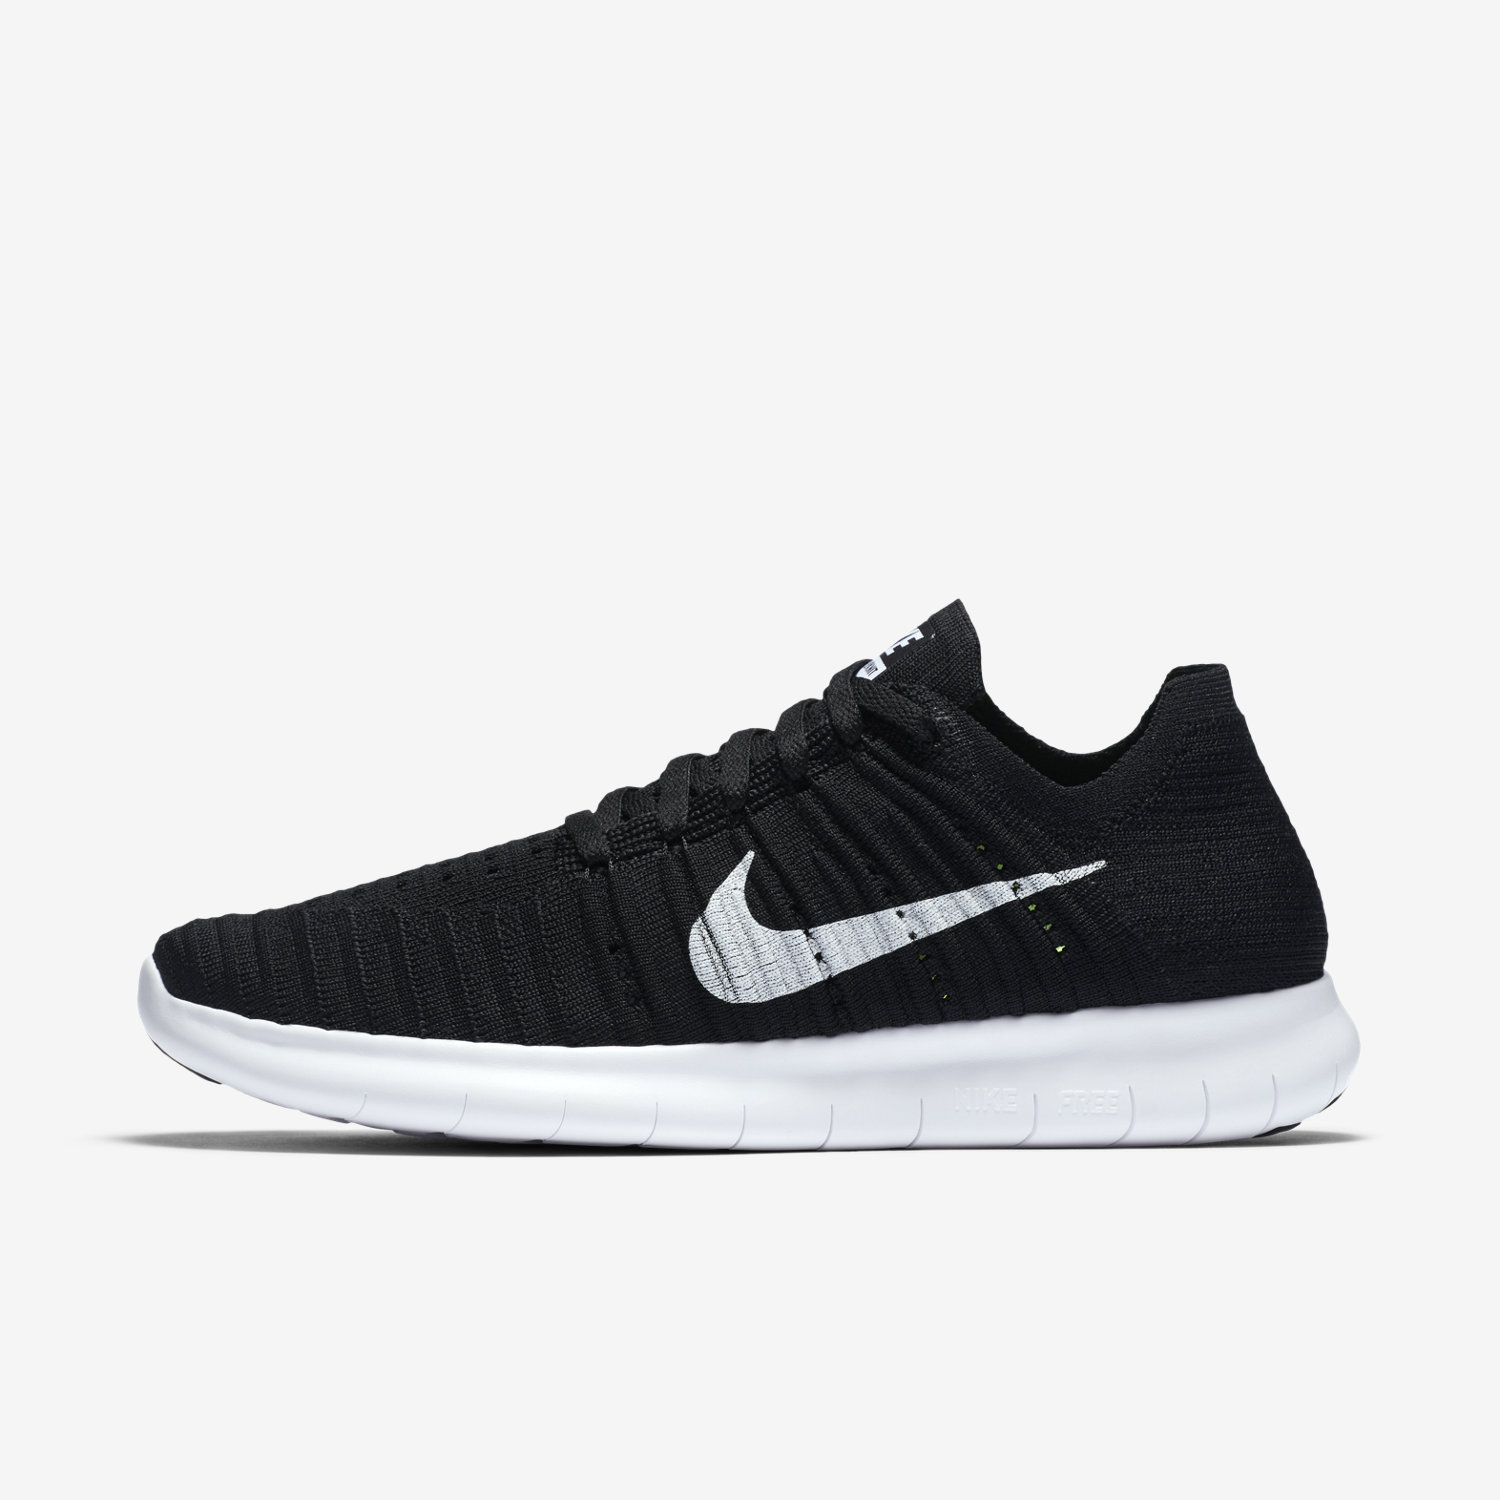 Make Your Own Shoes Nike Uk